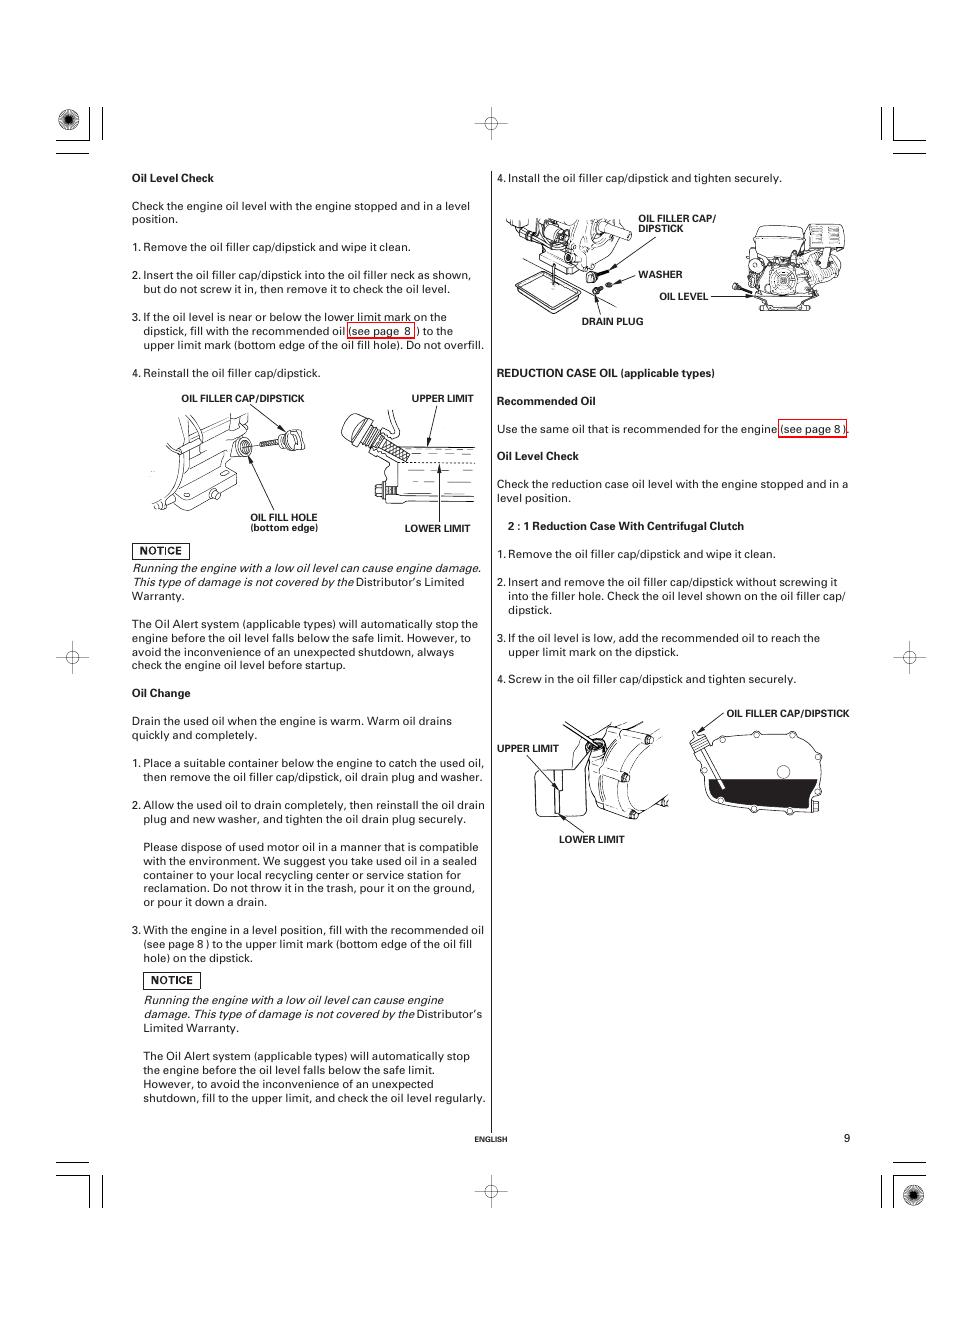 Oil level check | HONDA GX270 User Manual | Page 9 / 60